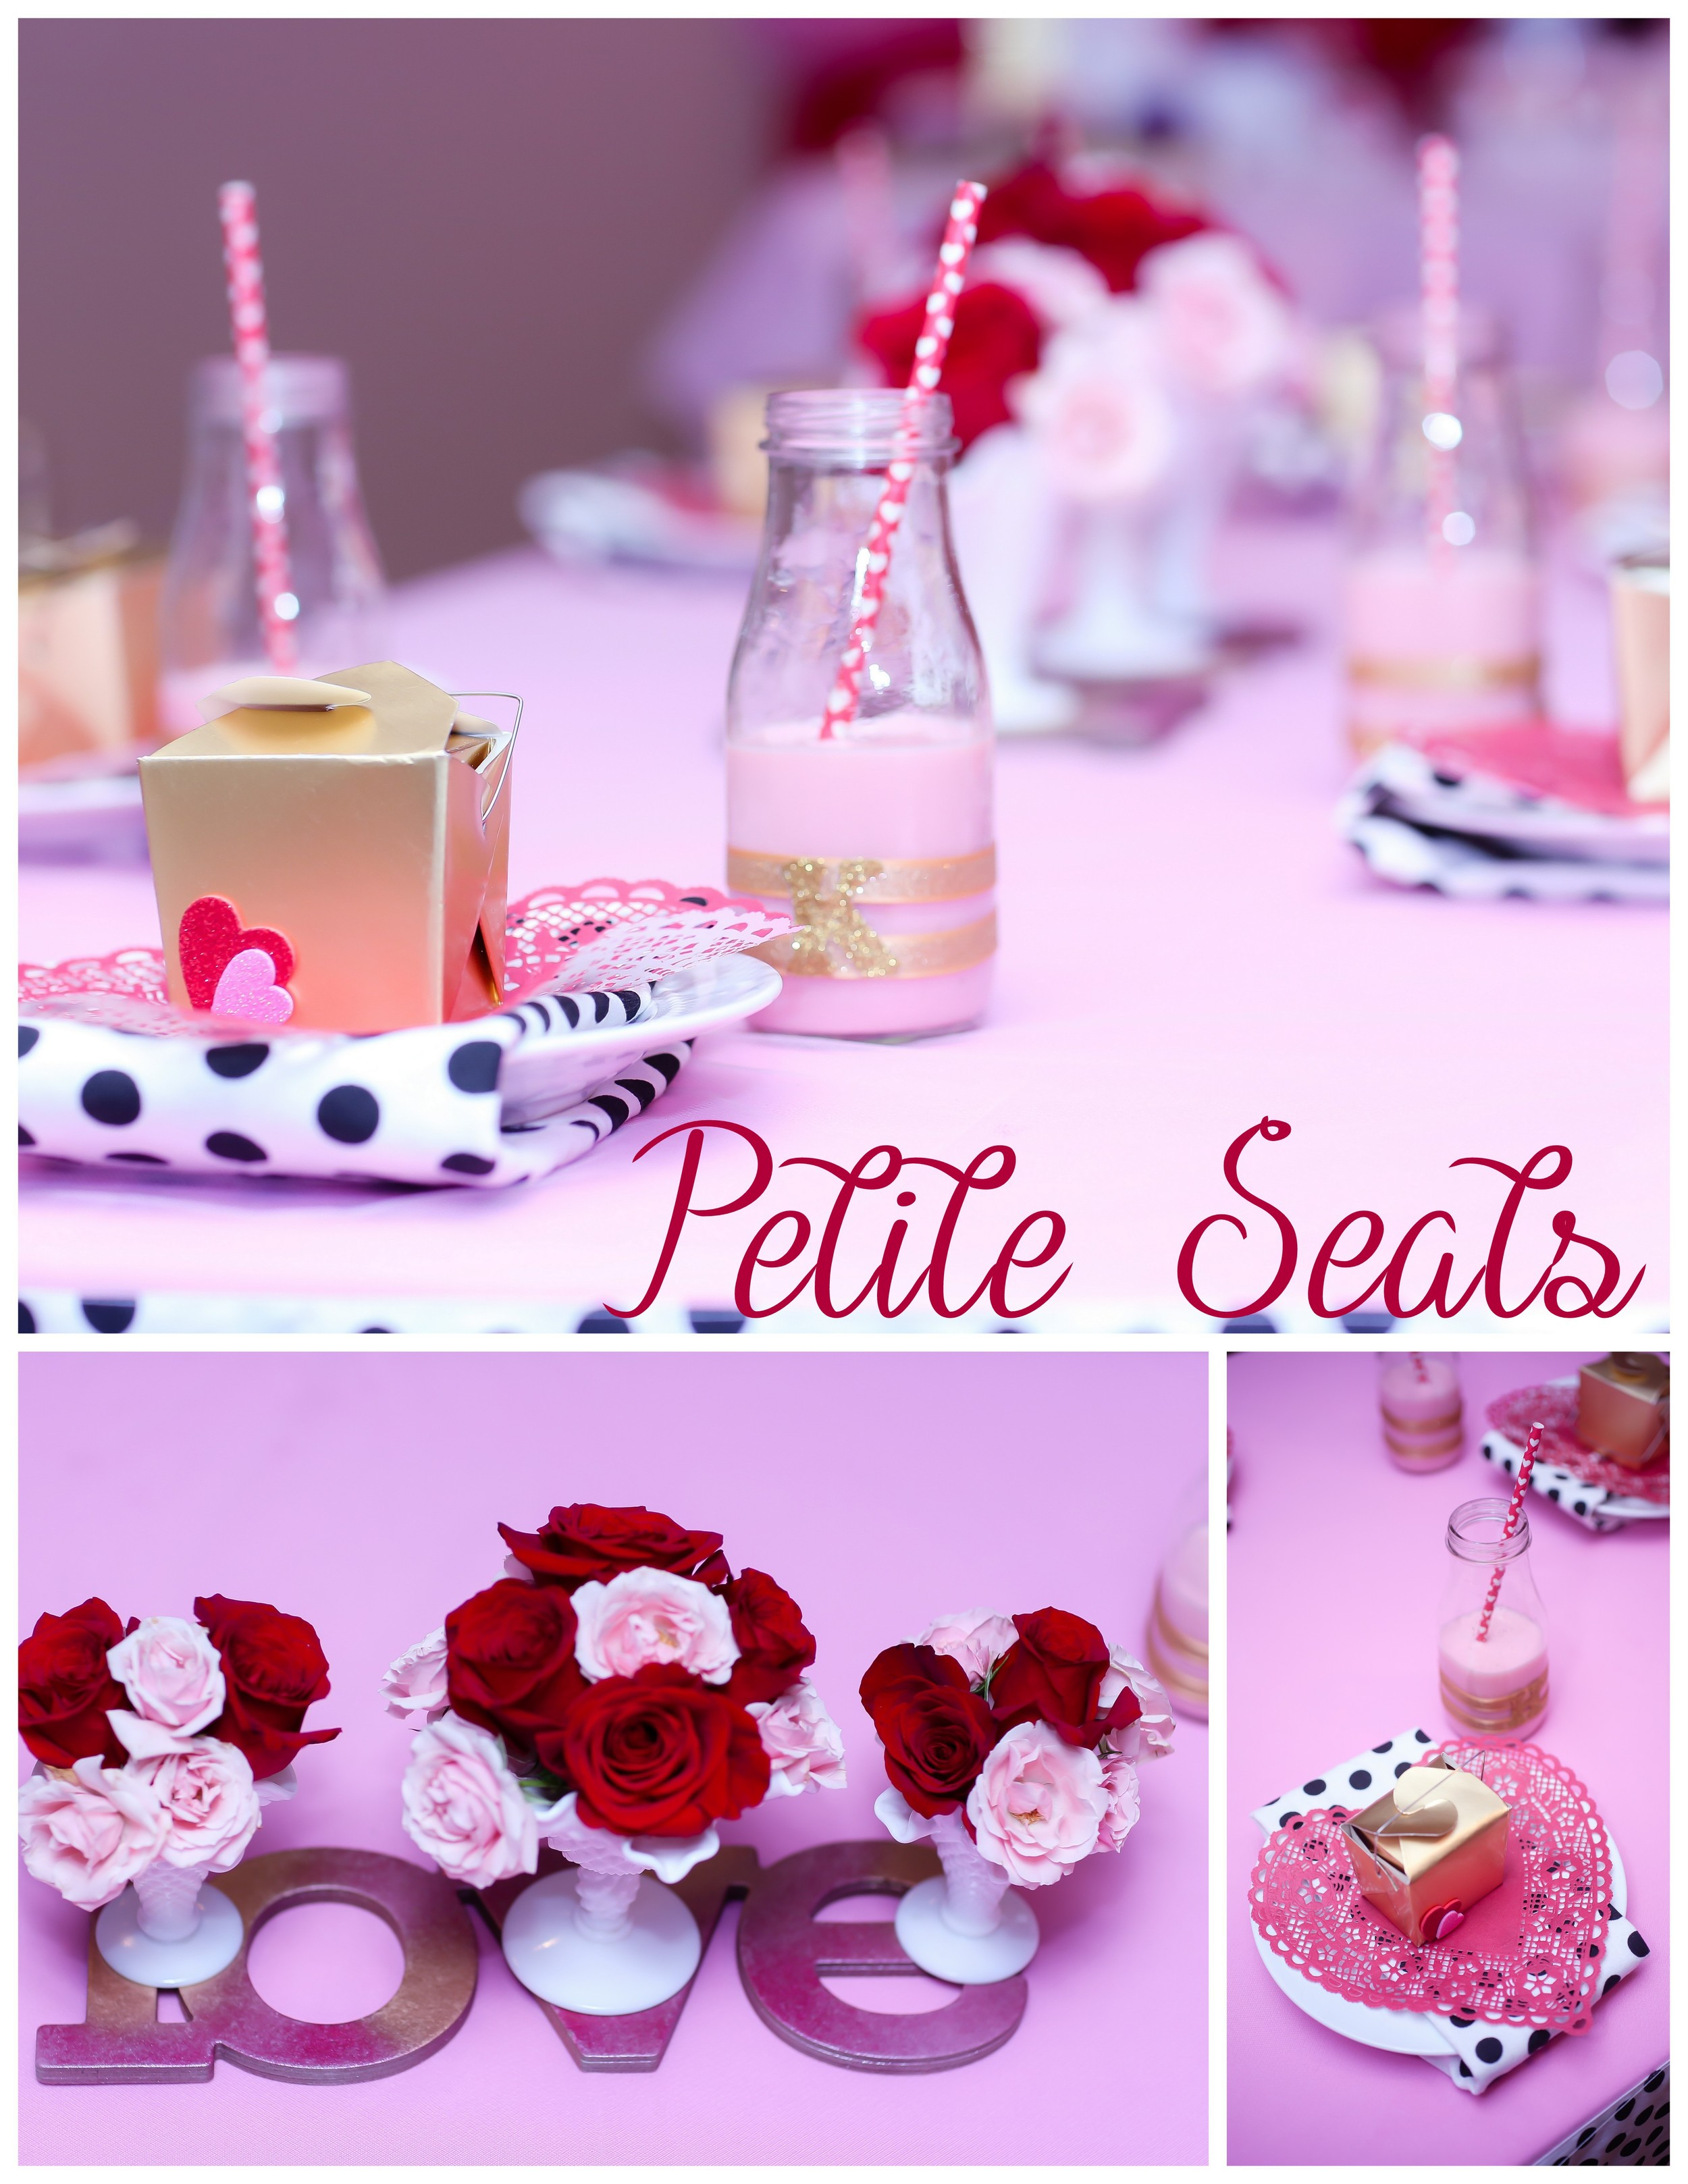 Who doesn't love strawberry milk?! And it was organic, a refreshing treat for the little ladies. The centerpieces created by Natasha are featuredtriadof her rental Fenton Hobnail Milk Glass collection.